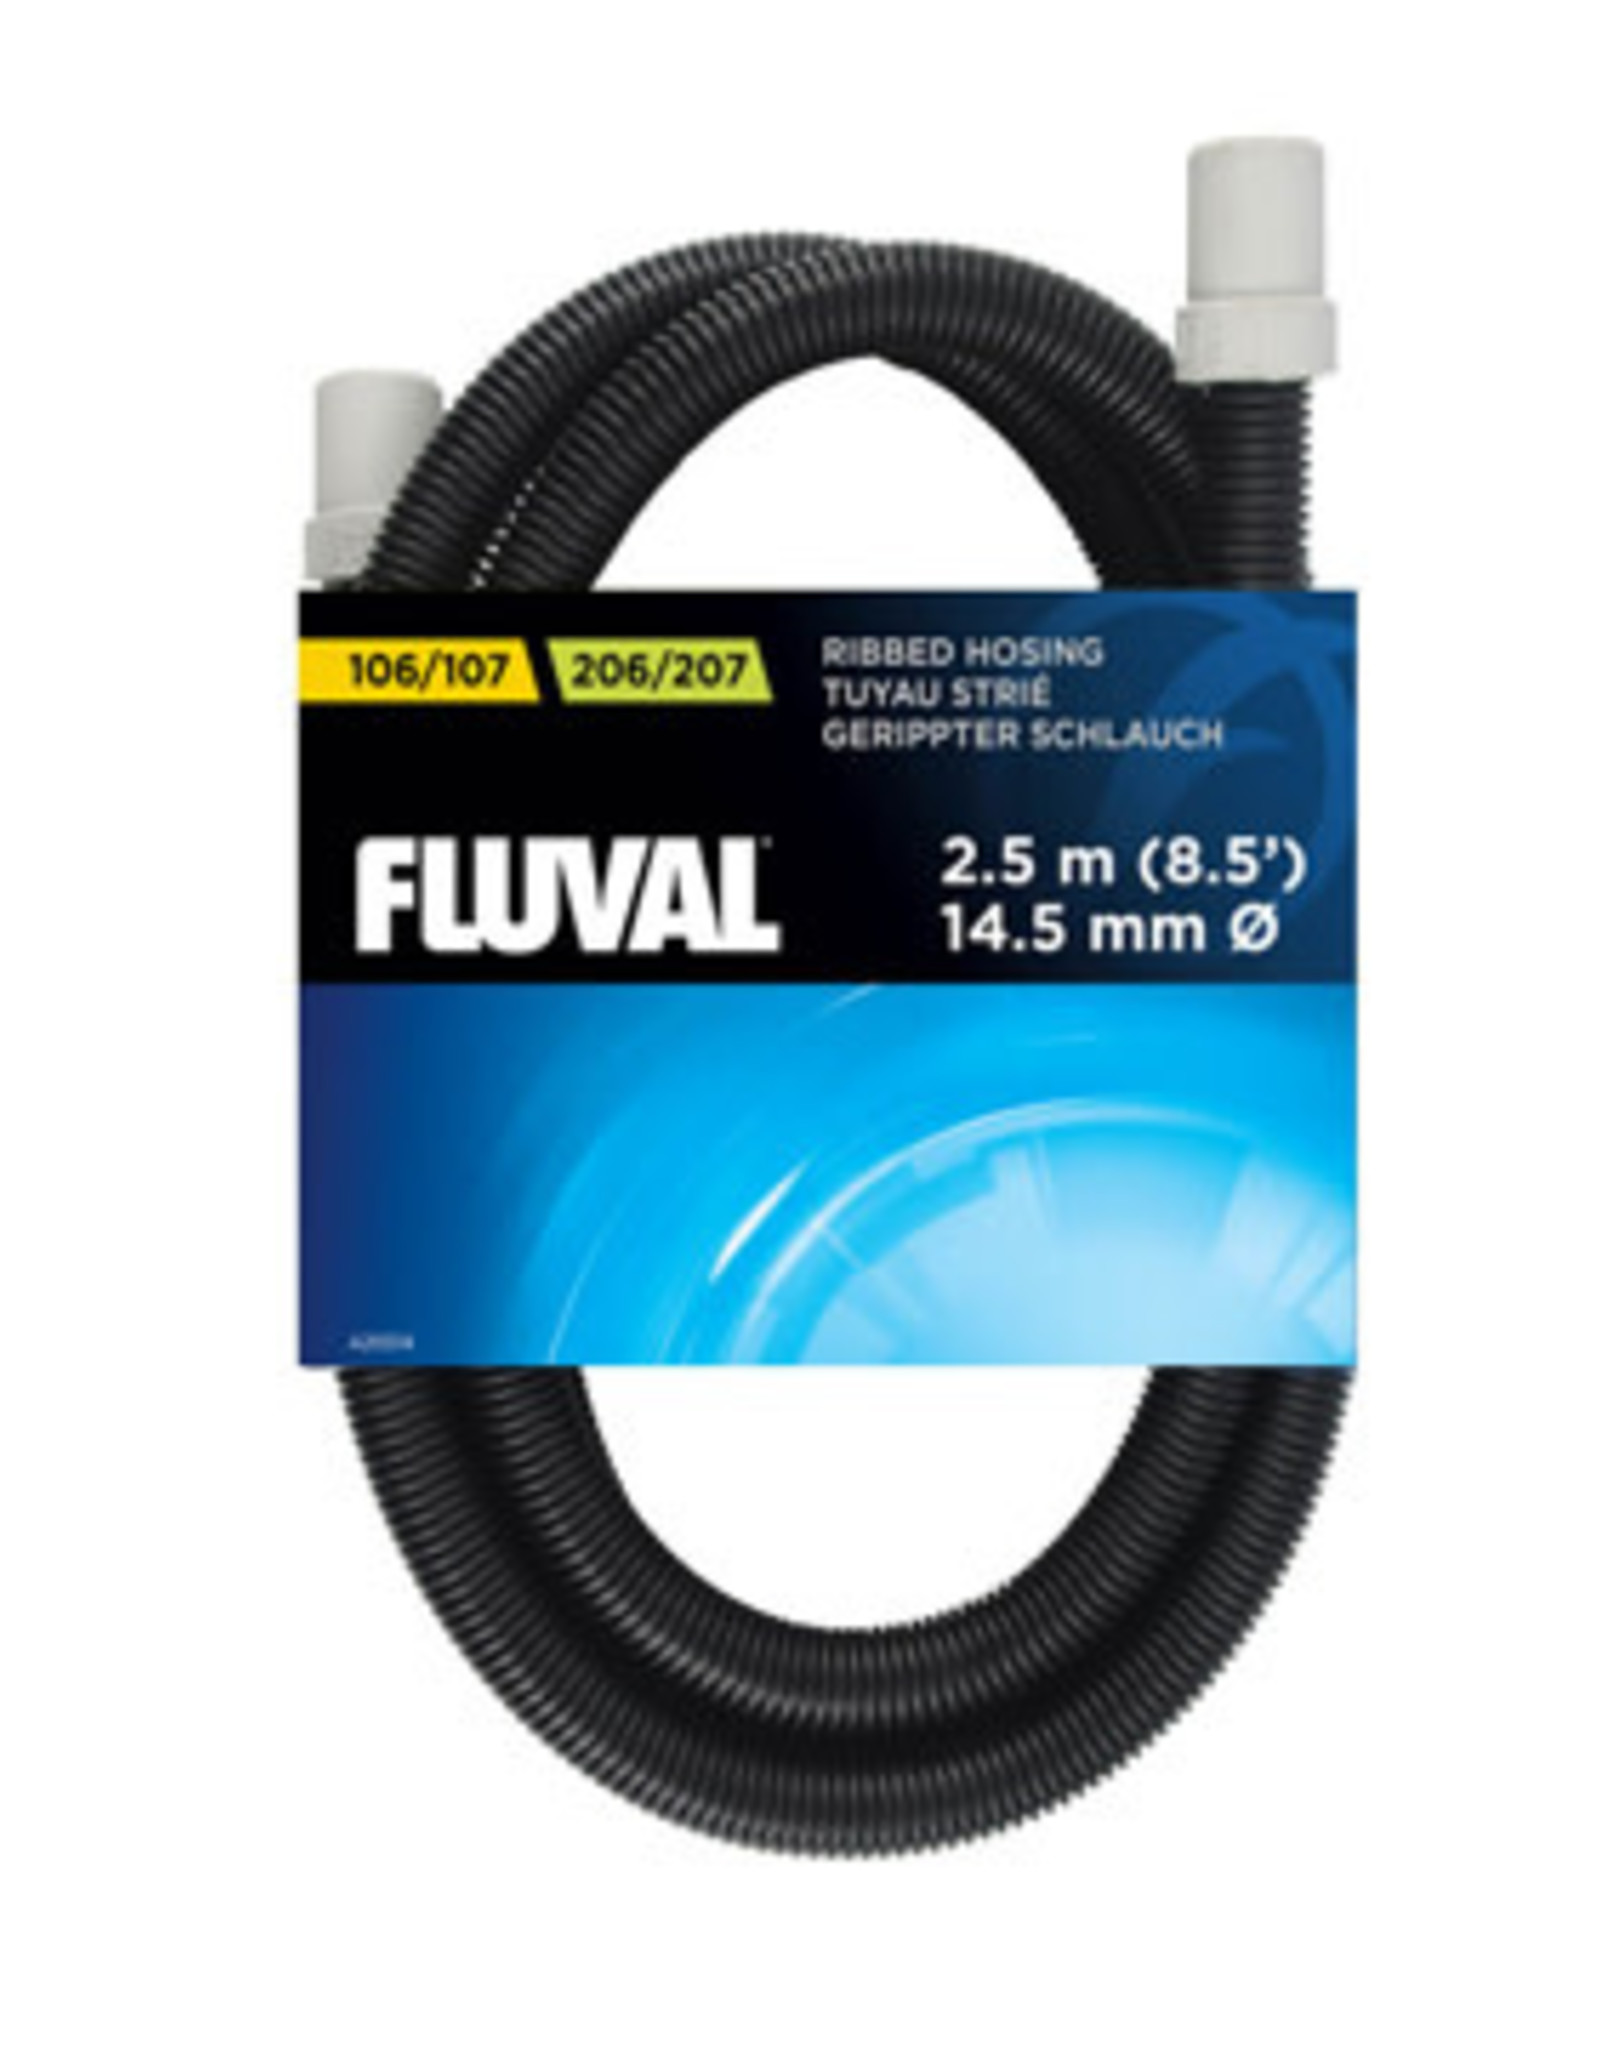 Fluval Fluval Replacement Ribbed Hosing for Fluval Canister Filters